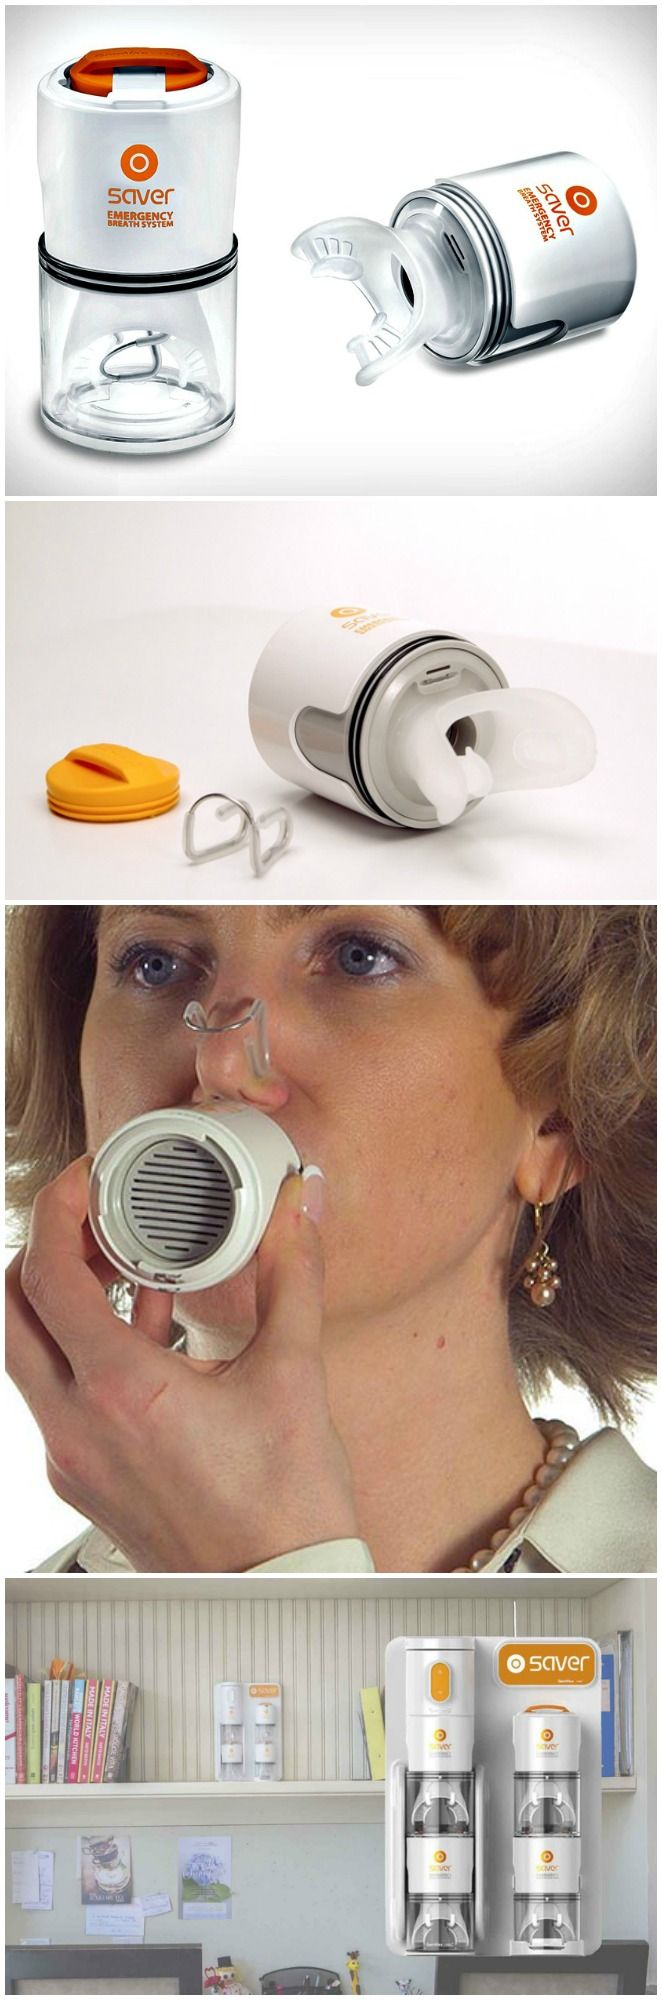 Saver emergency breath system.